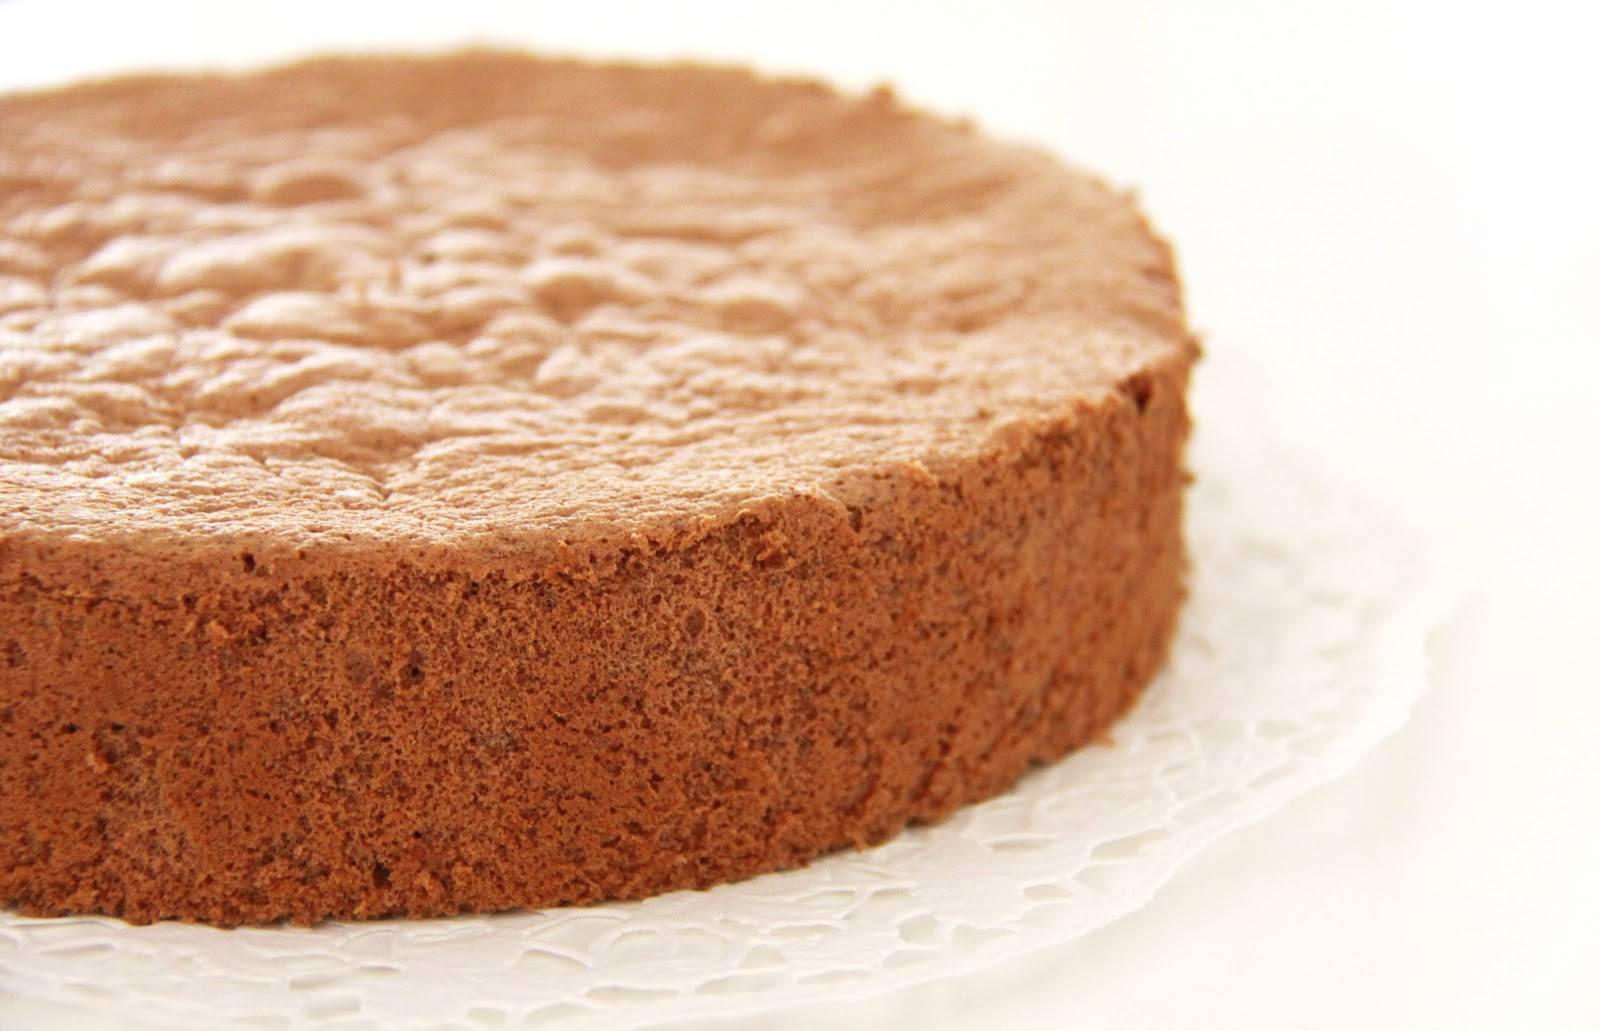 Easy chocolate sponge cake recipe with oil